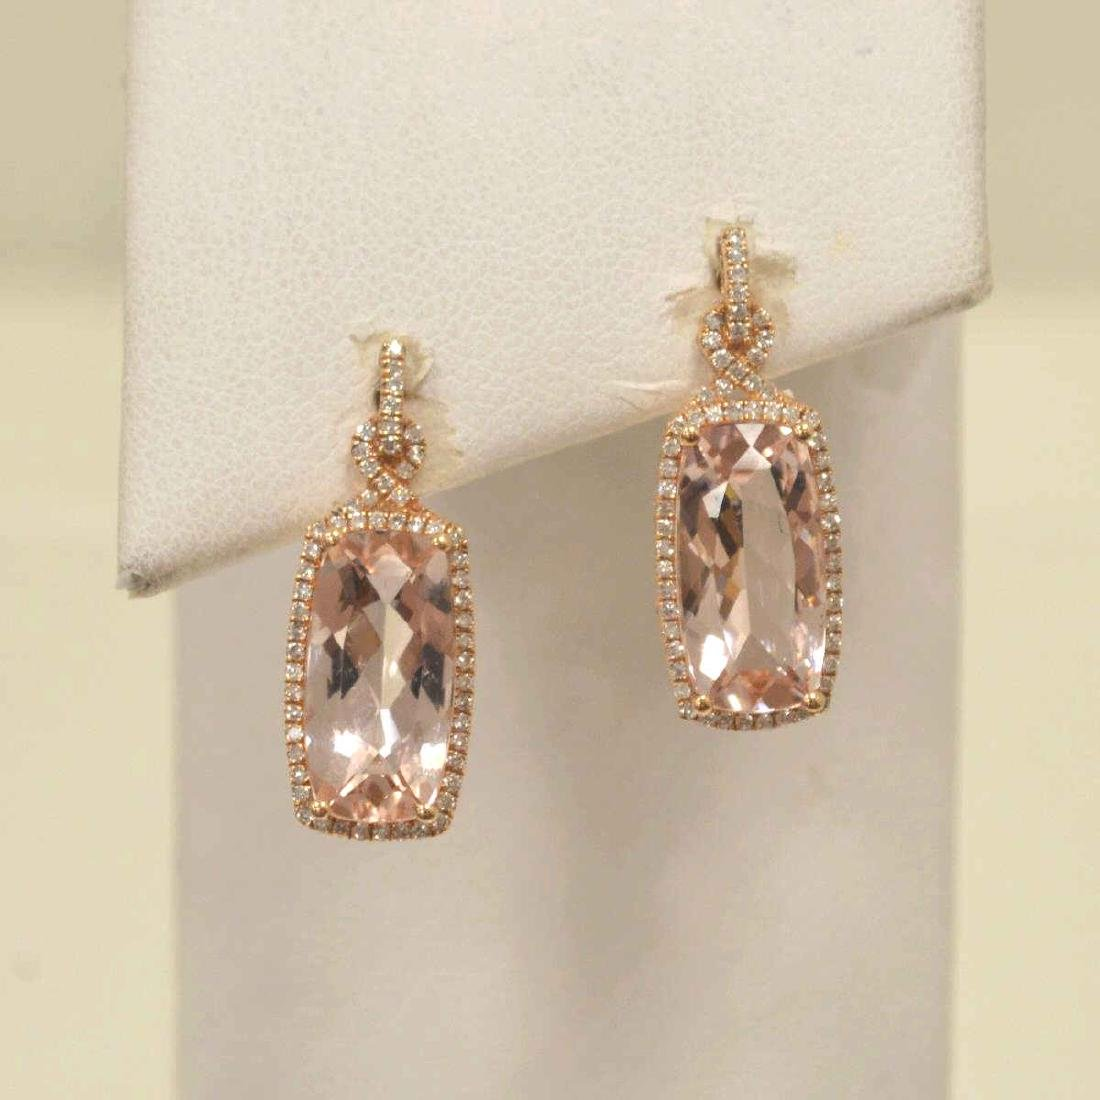 14kt rose gold morganite and diamond earrings